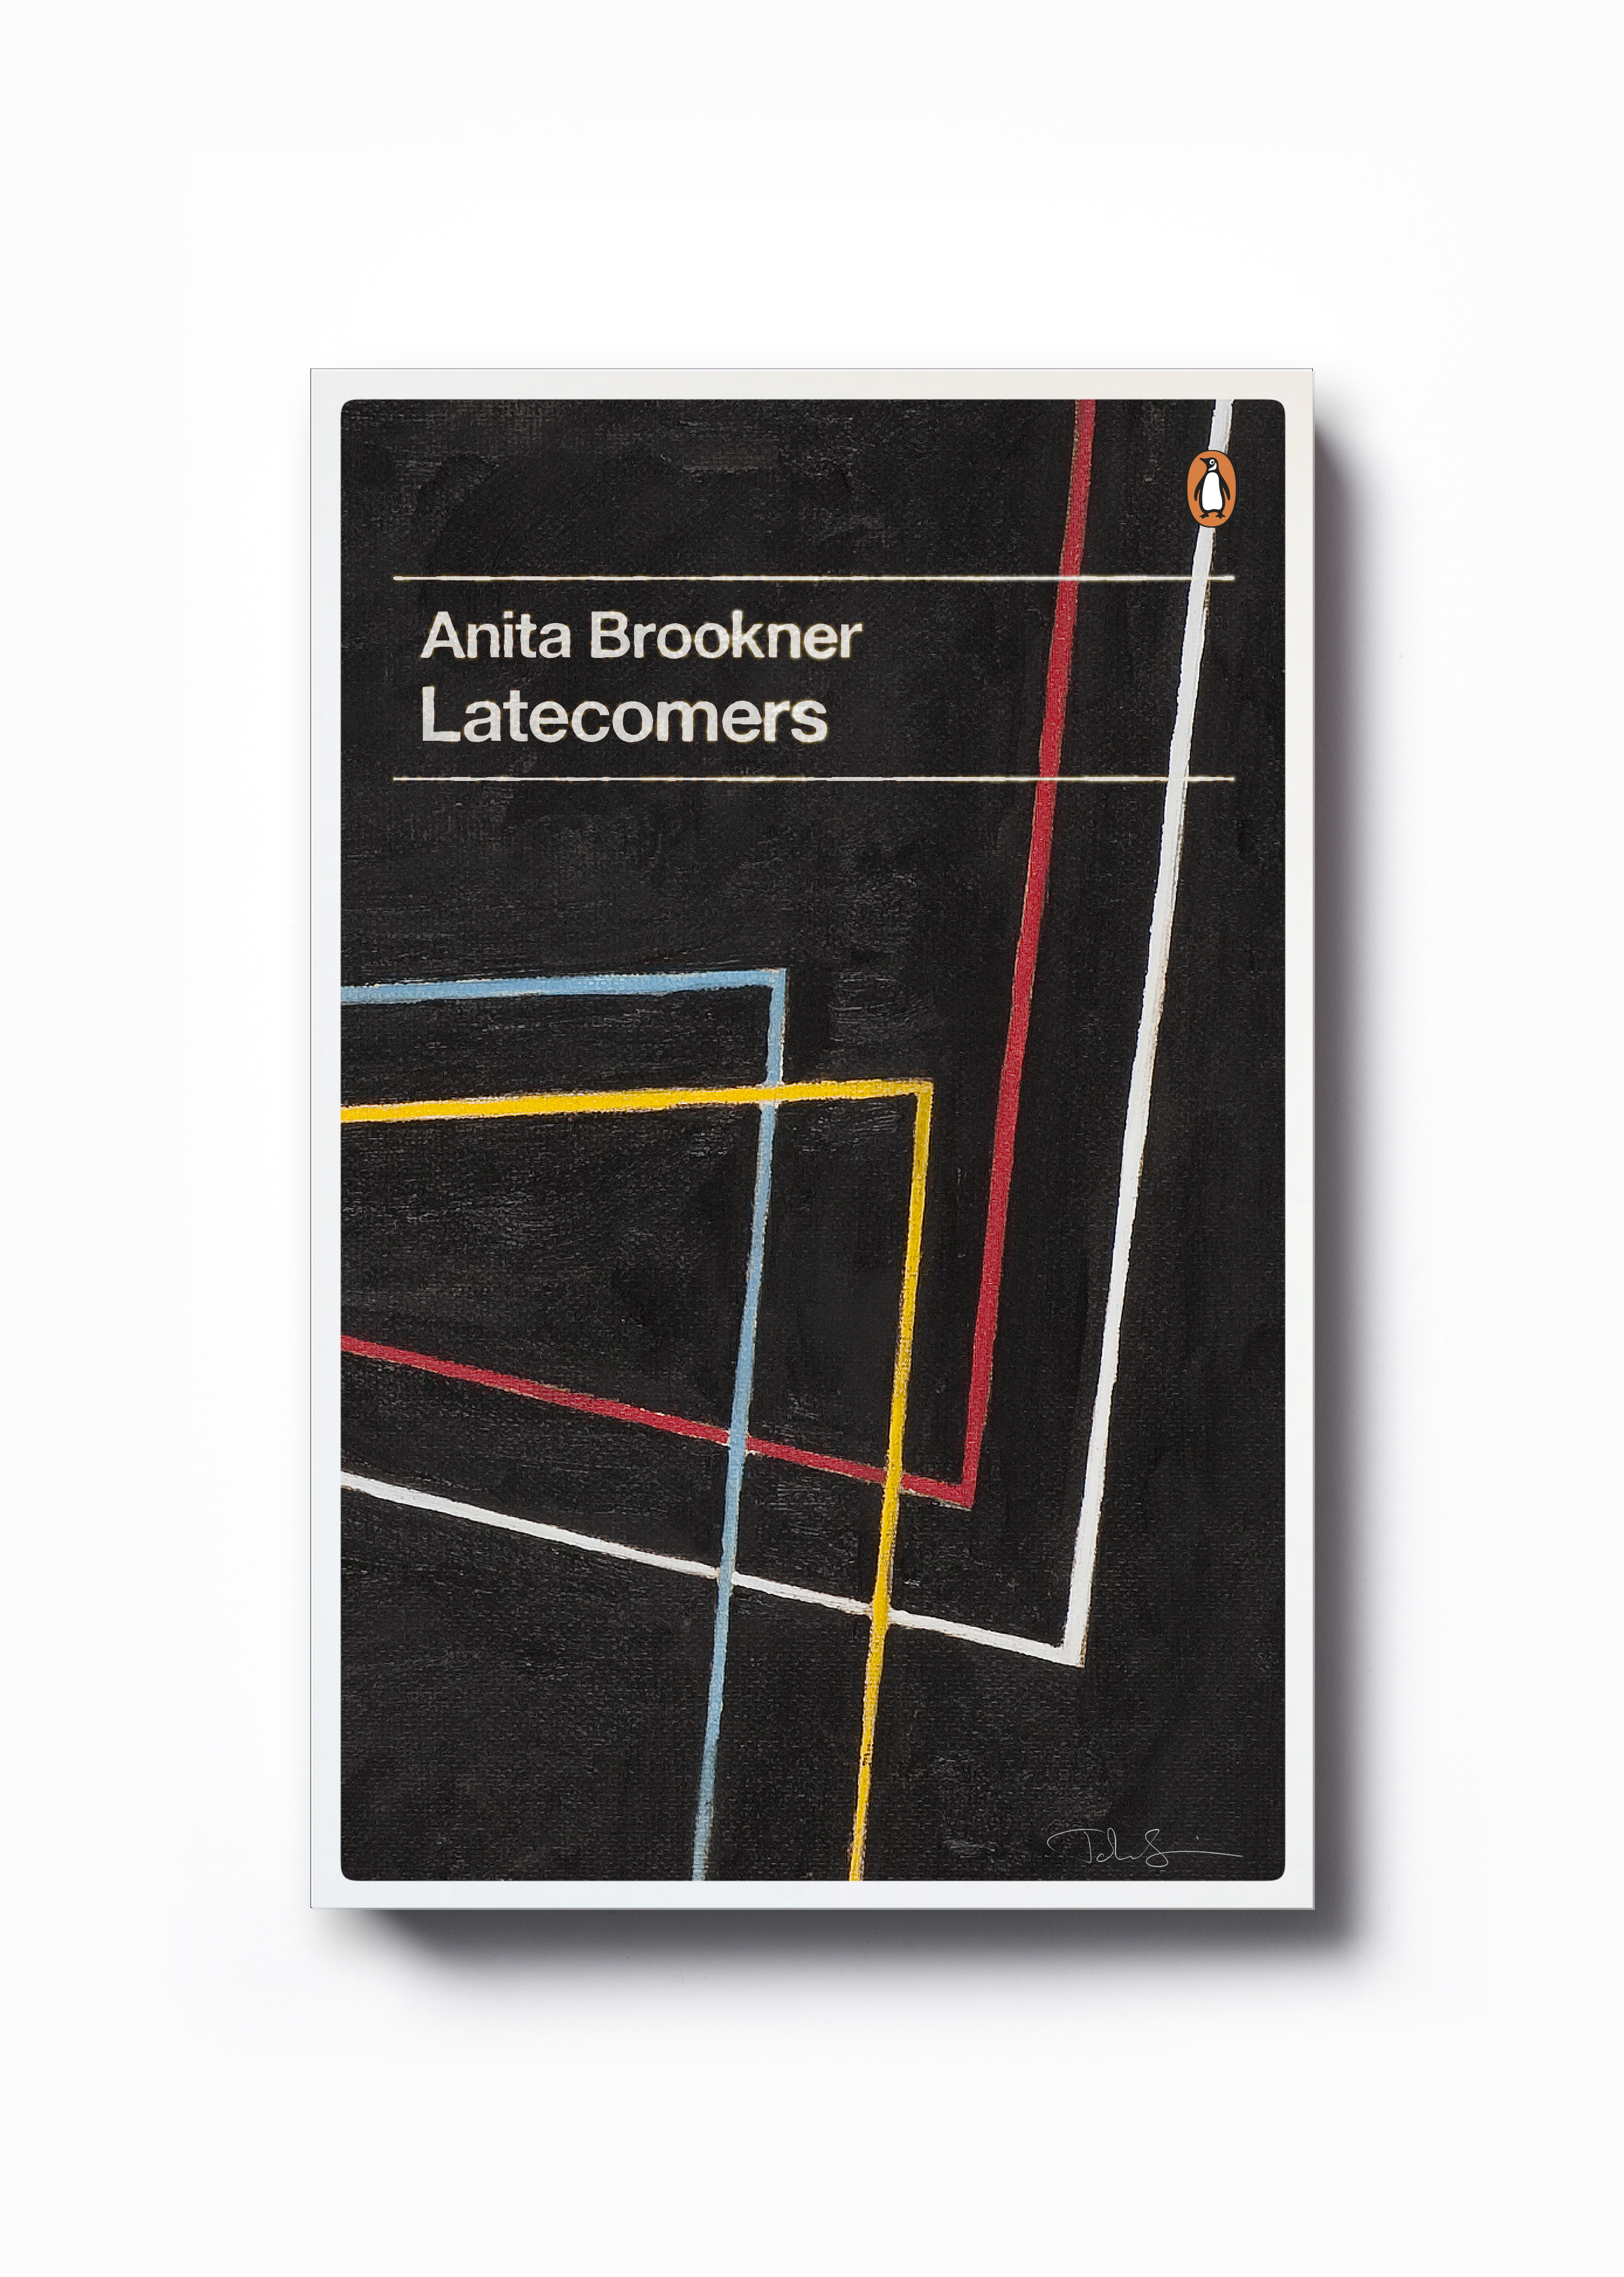 Latecomers by Anita Brookner (Penguin Decades series)  - Art: John Squire Design: Jim Stoddart